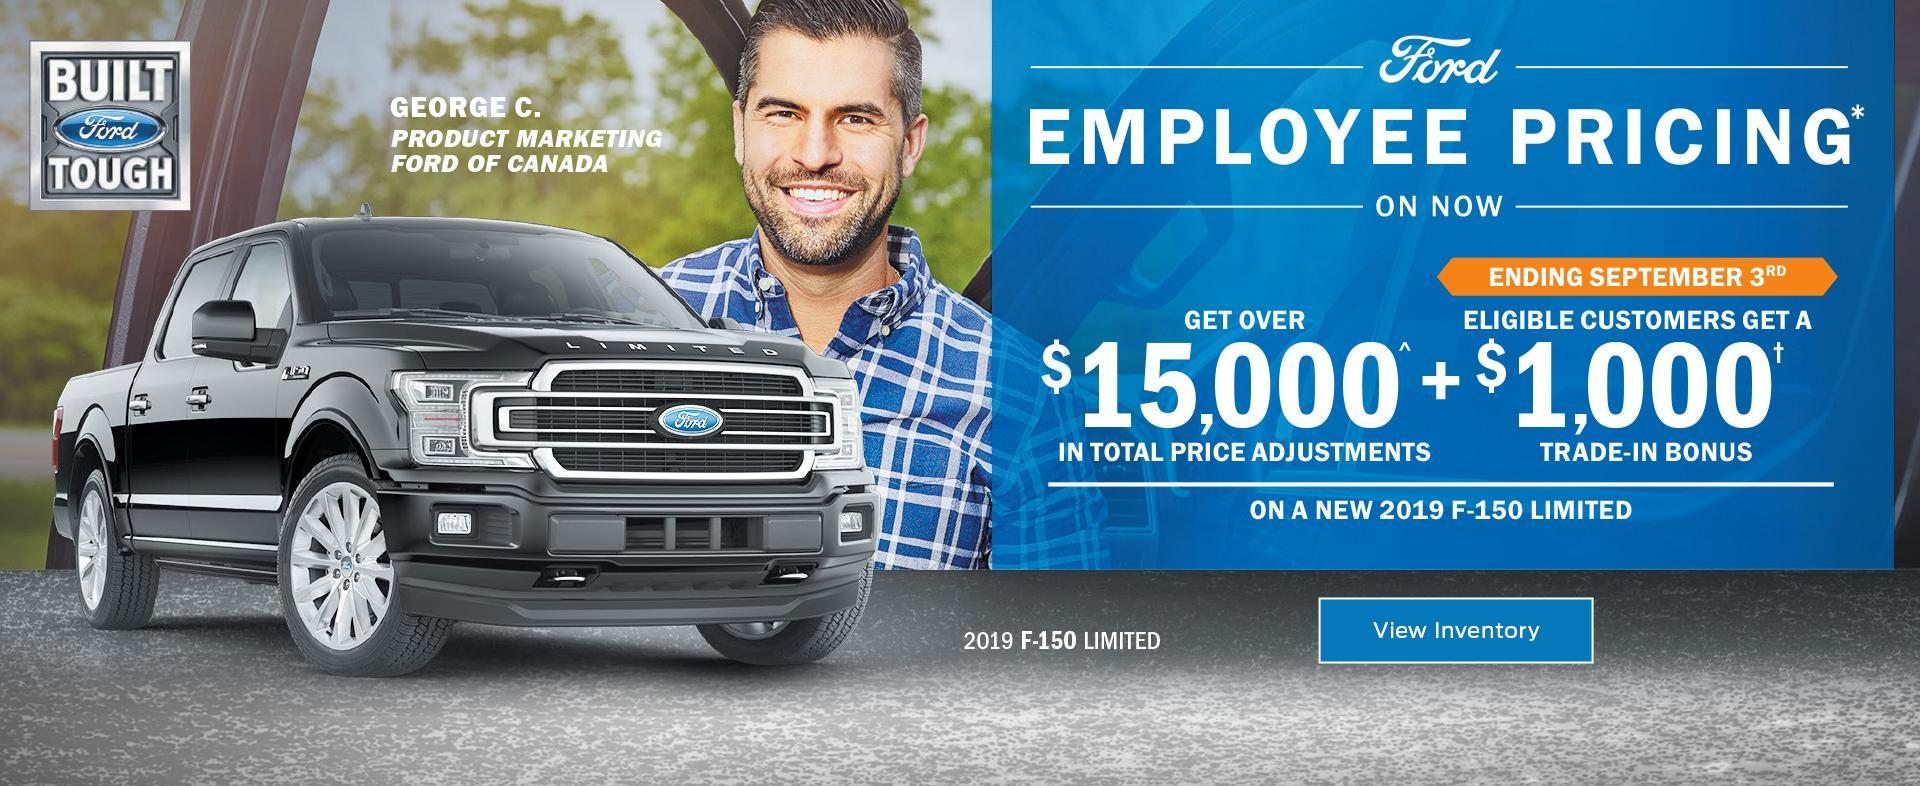 FEP F150 Offer Drayton Valley Ford